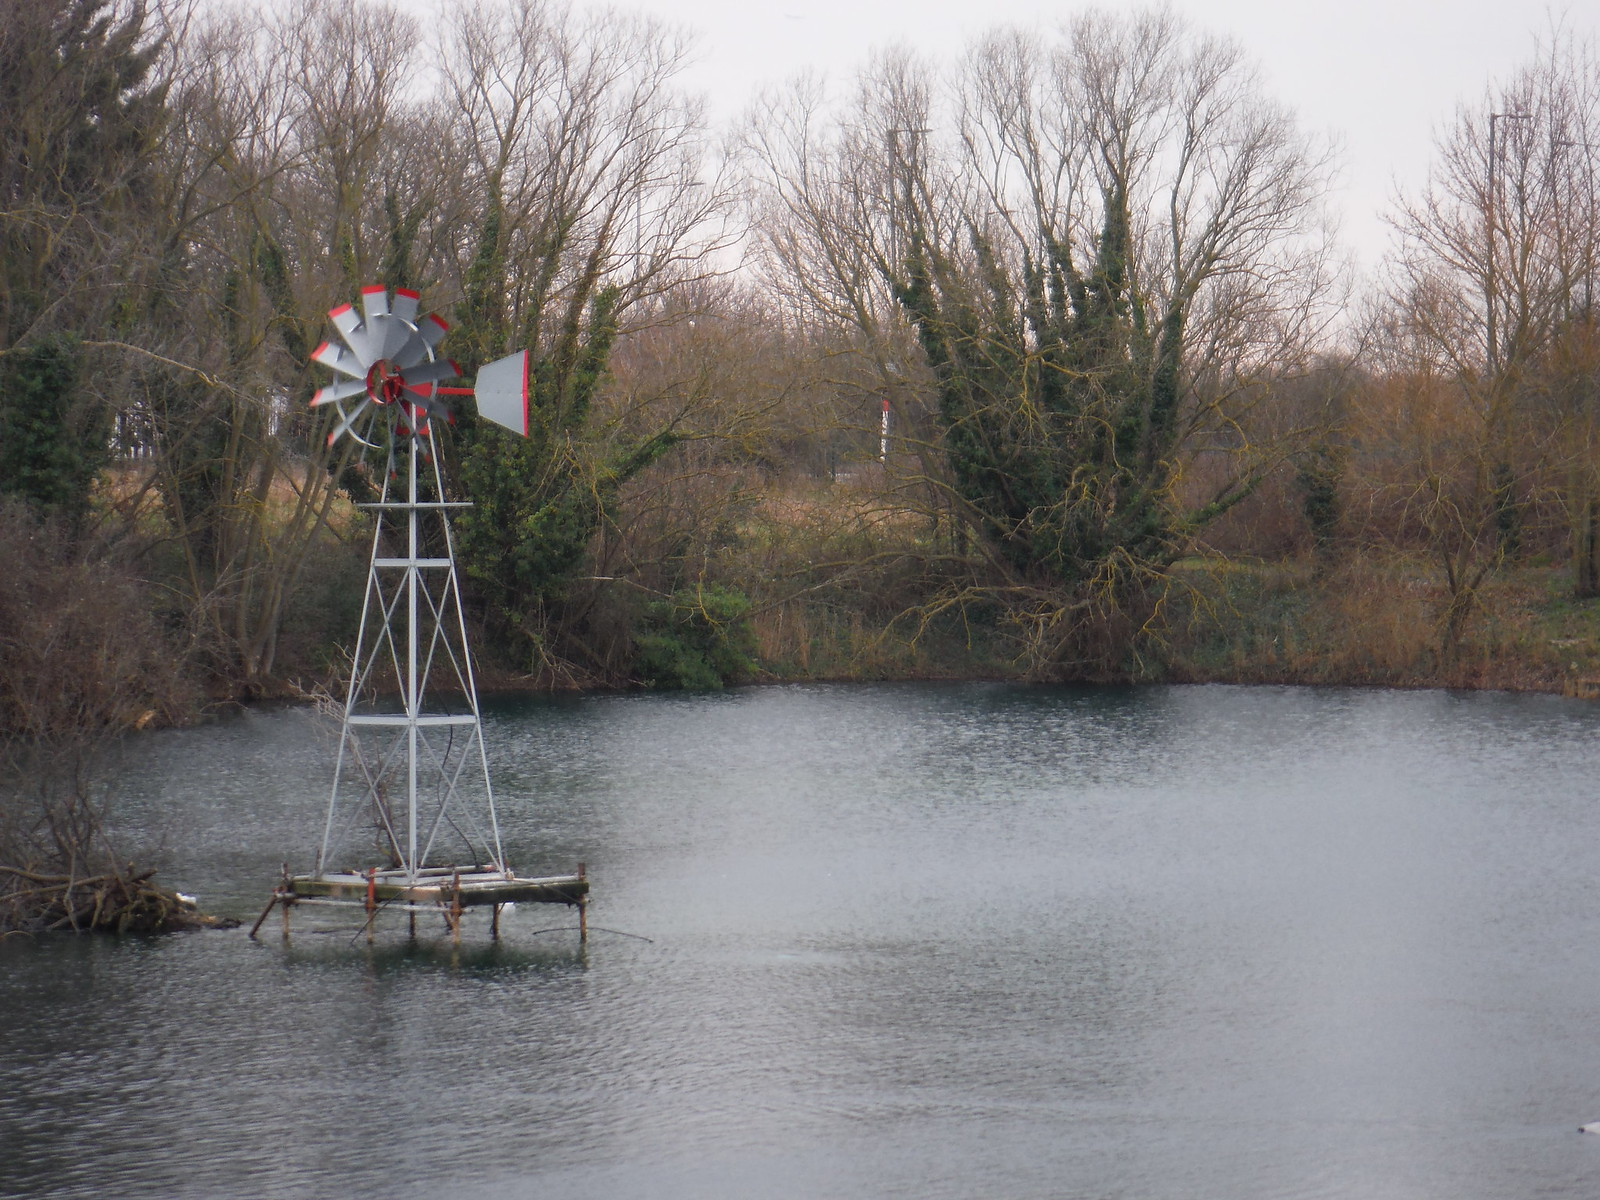 Eastbrook Pond, Eastbrookend Country Park SWC Short Walk 33 - Dagenham Parks, Rivers and Ponds